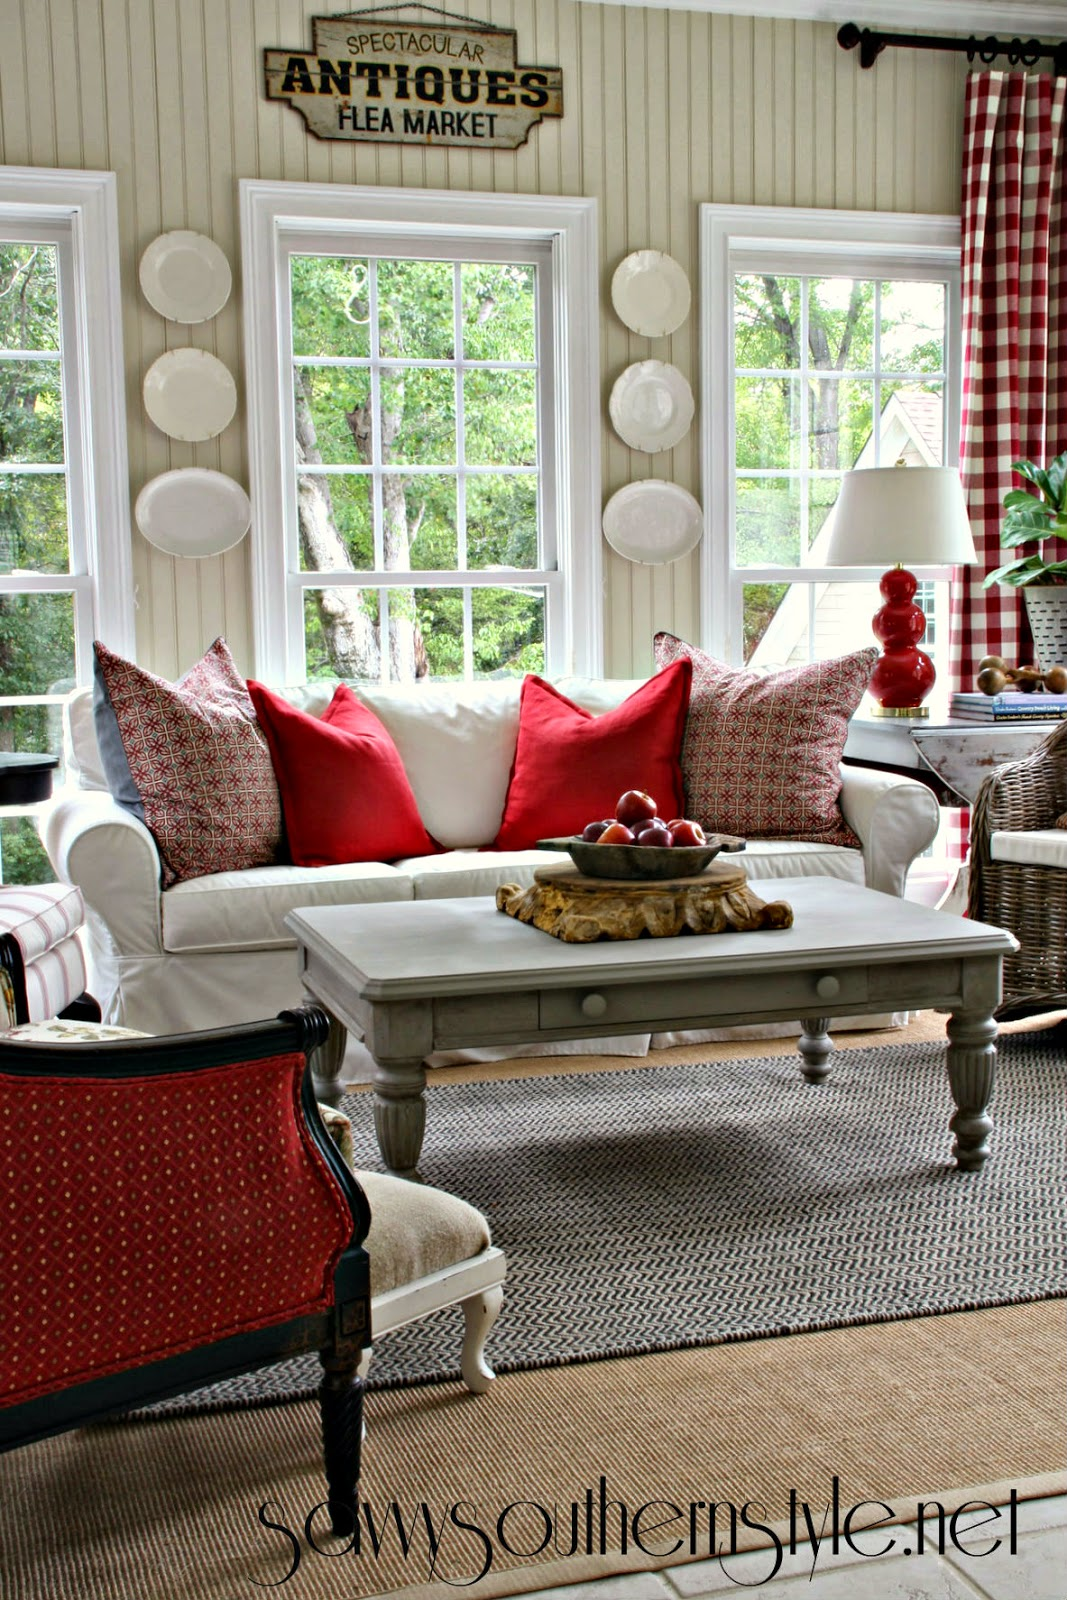 Http Www Savvysouthernstyle Net 2014 09 A Change Of Colors In Sun Room Html